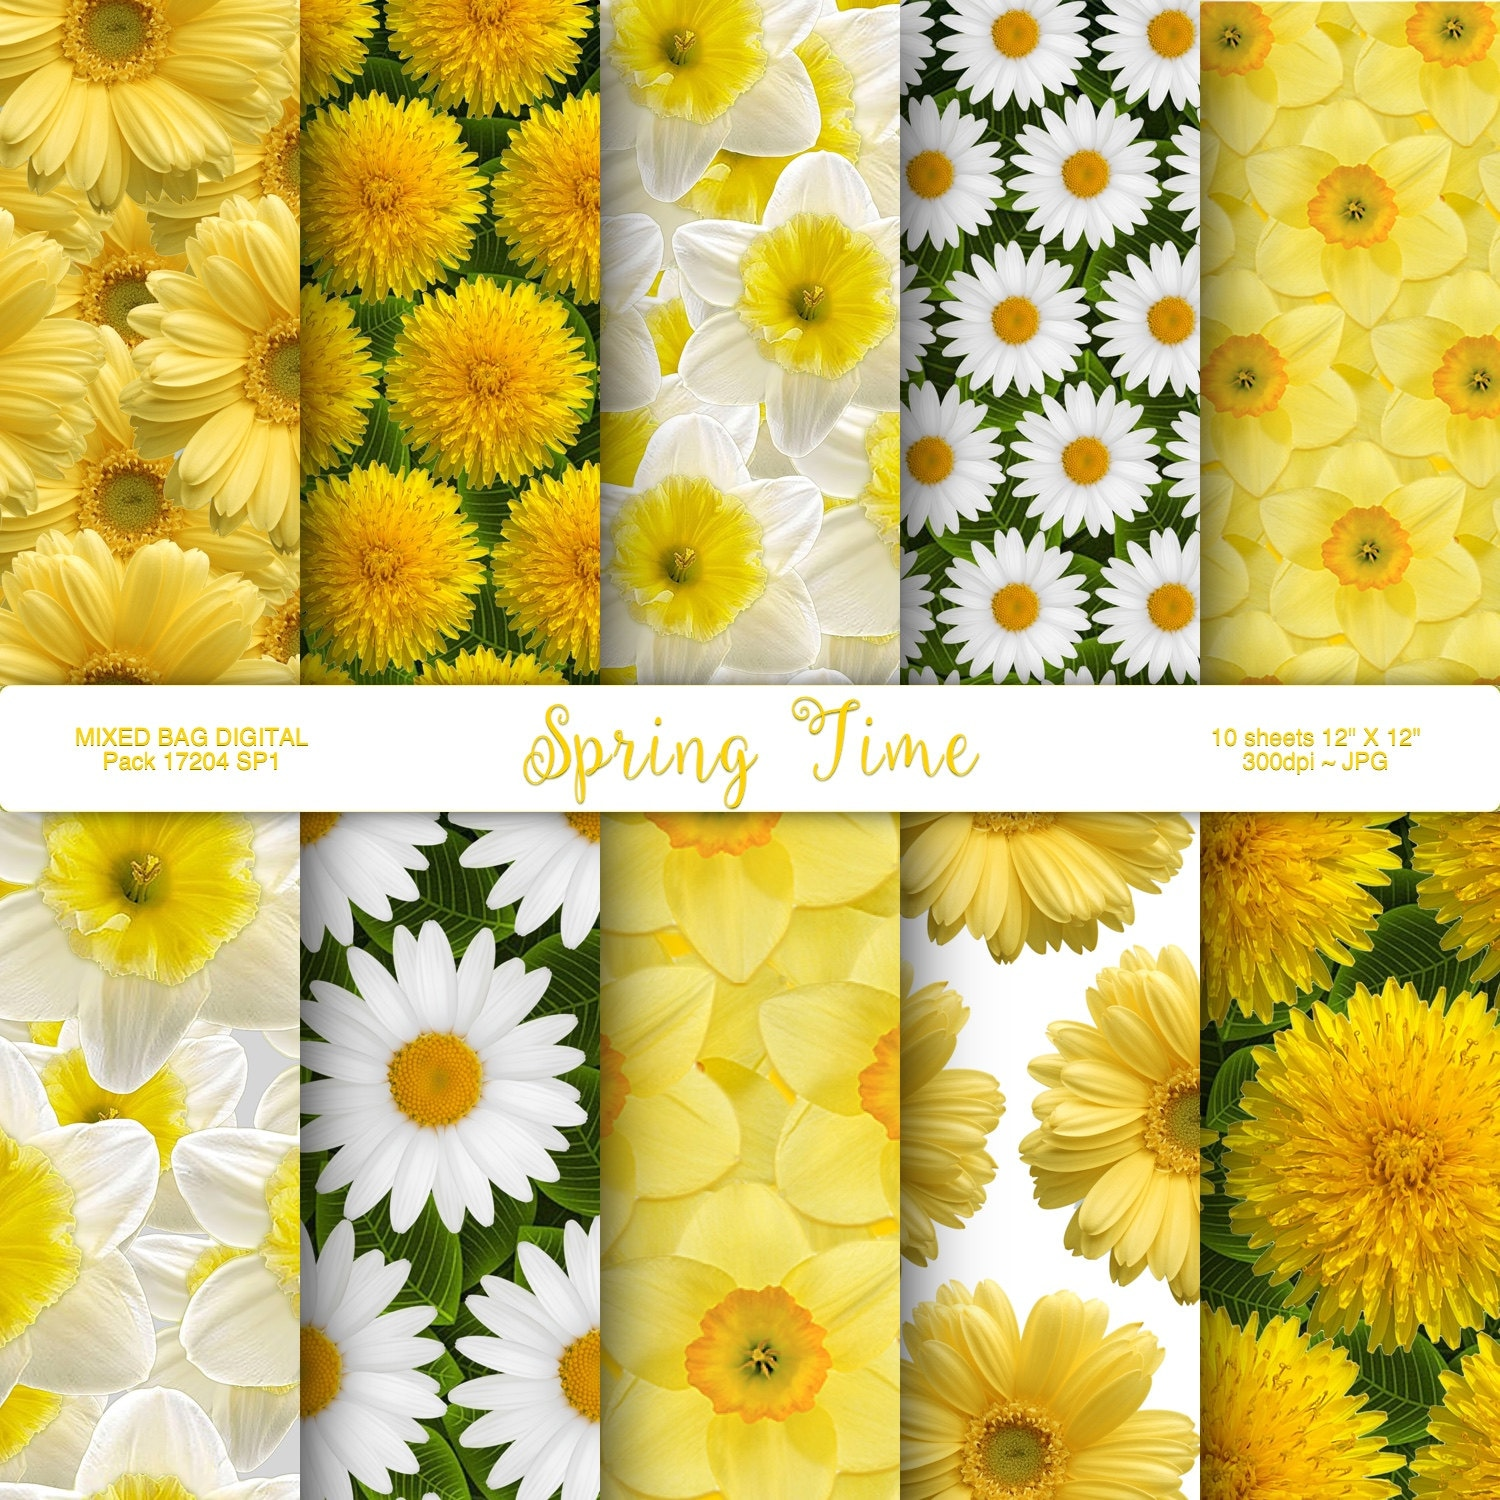 Spring Easter Flowers 10 Sheet Assortment Dandelions Daisies Etsy